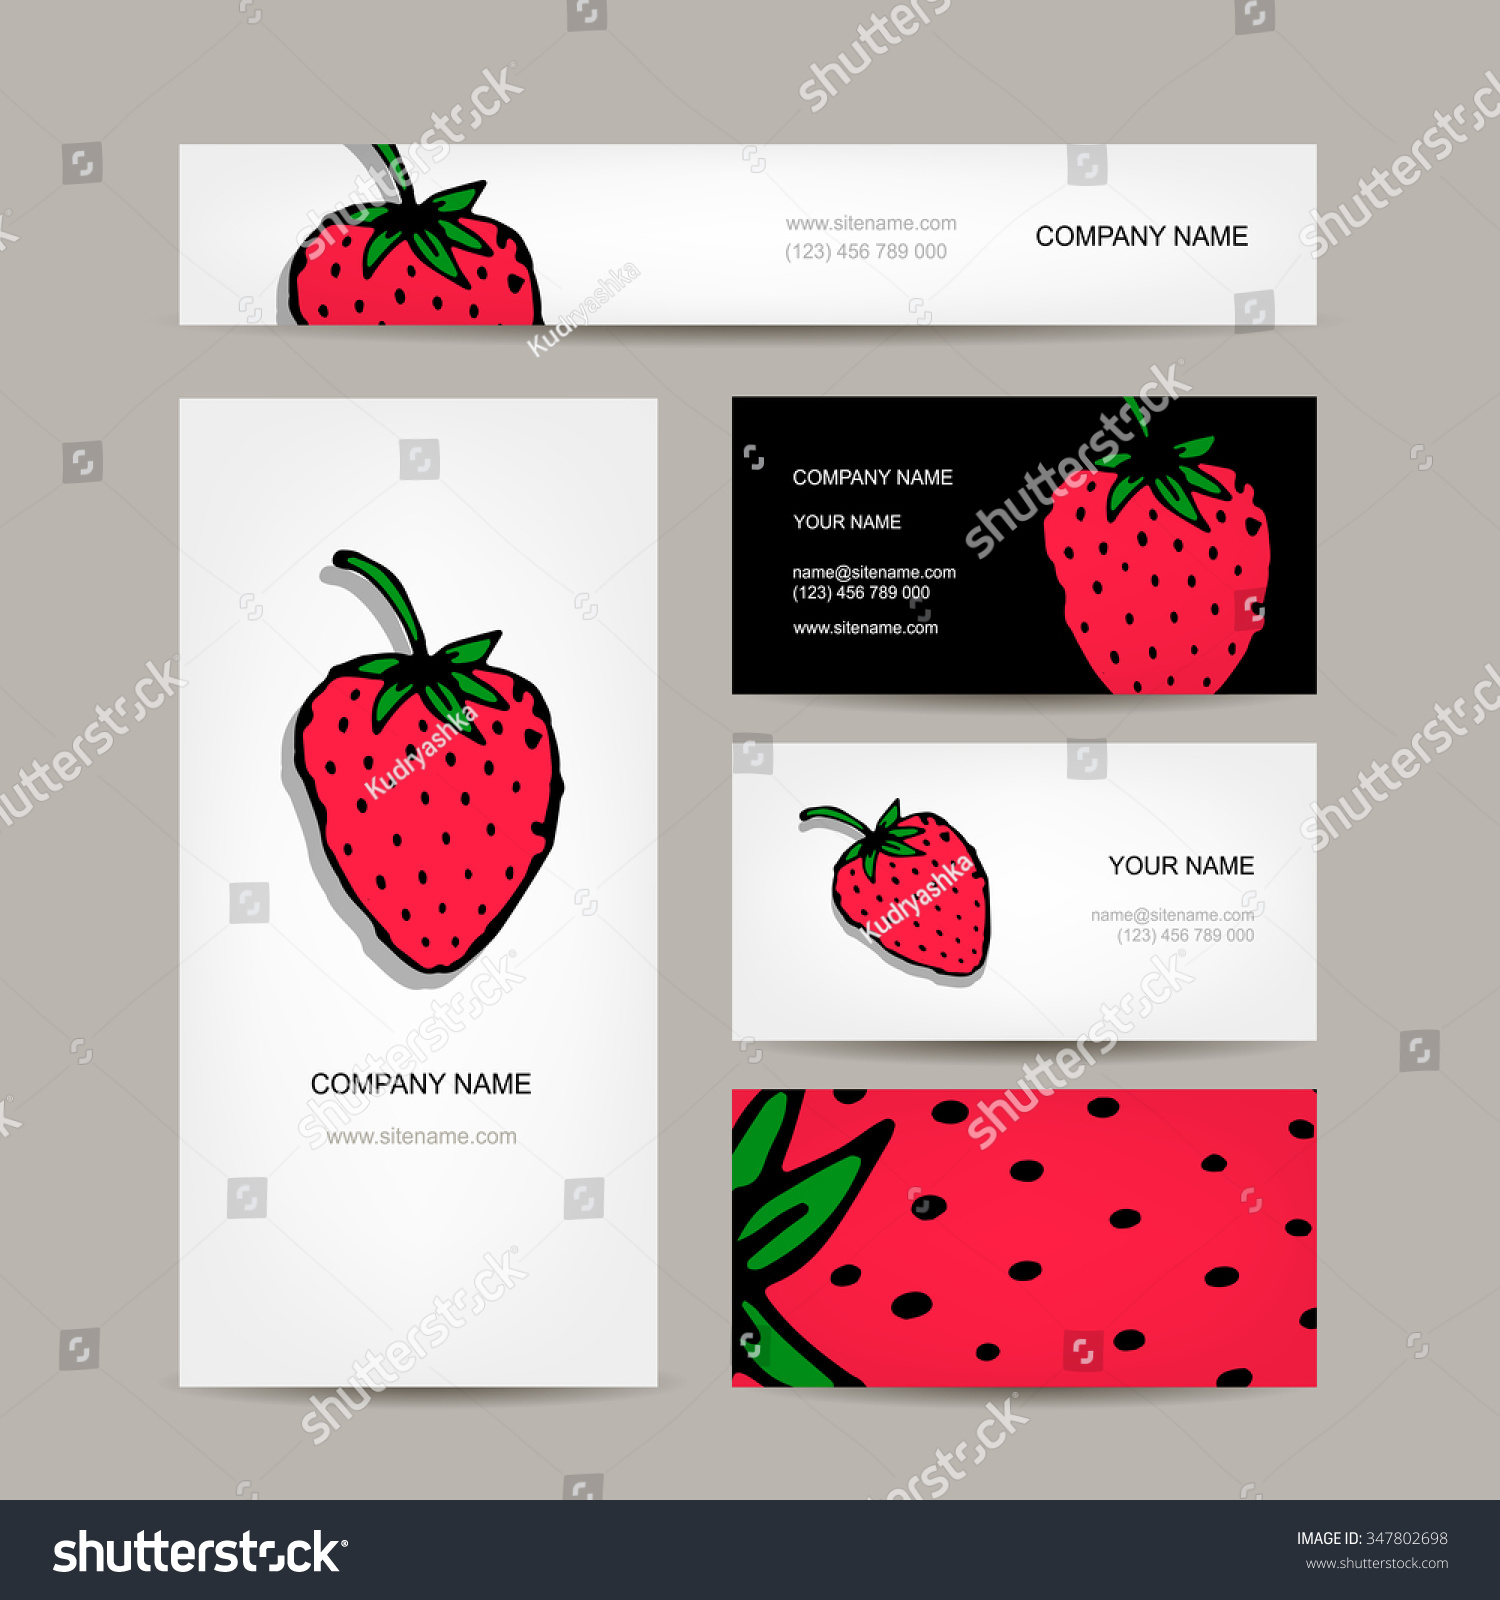 Business Cards Collection Strawberry Design Vector Stock Vector ...